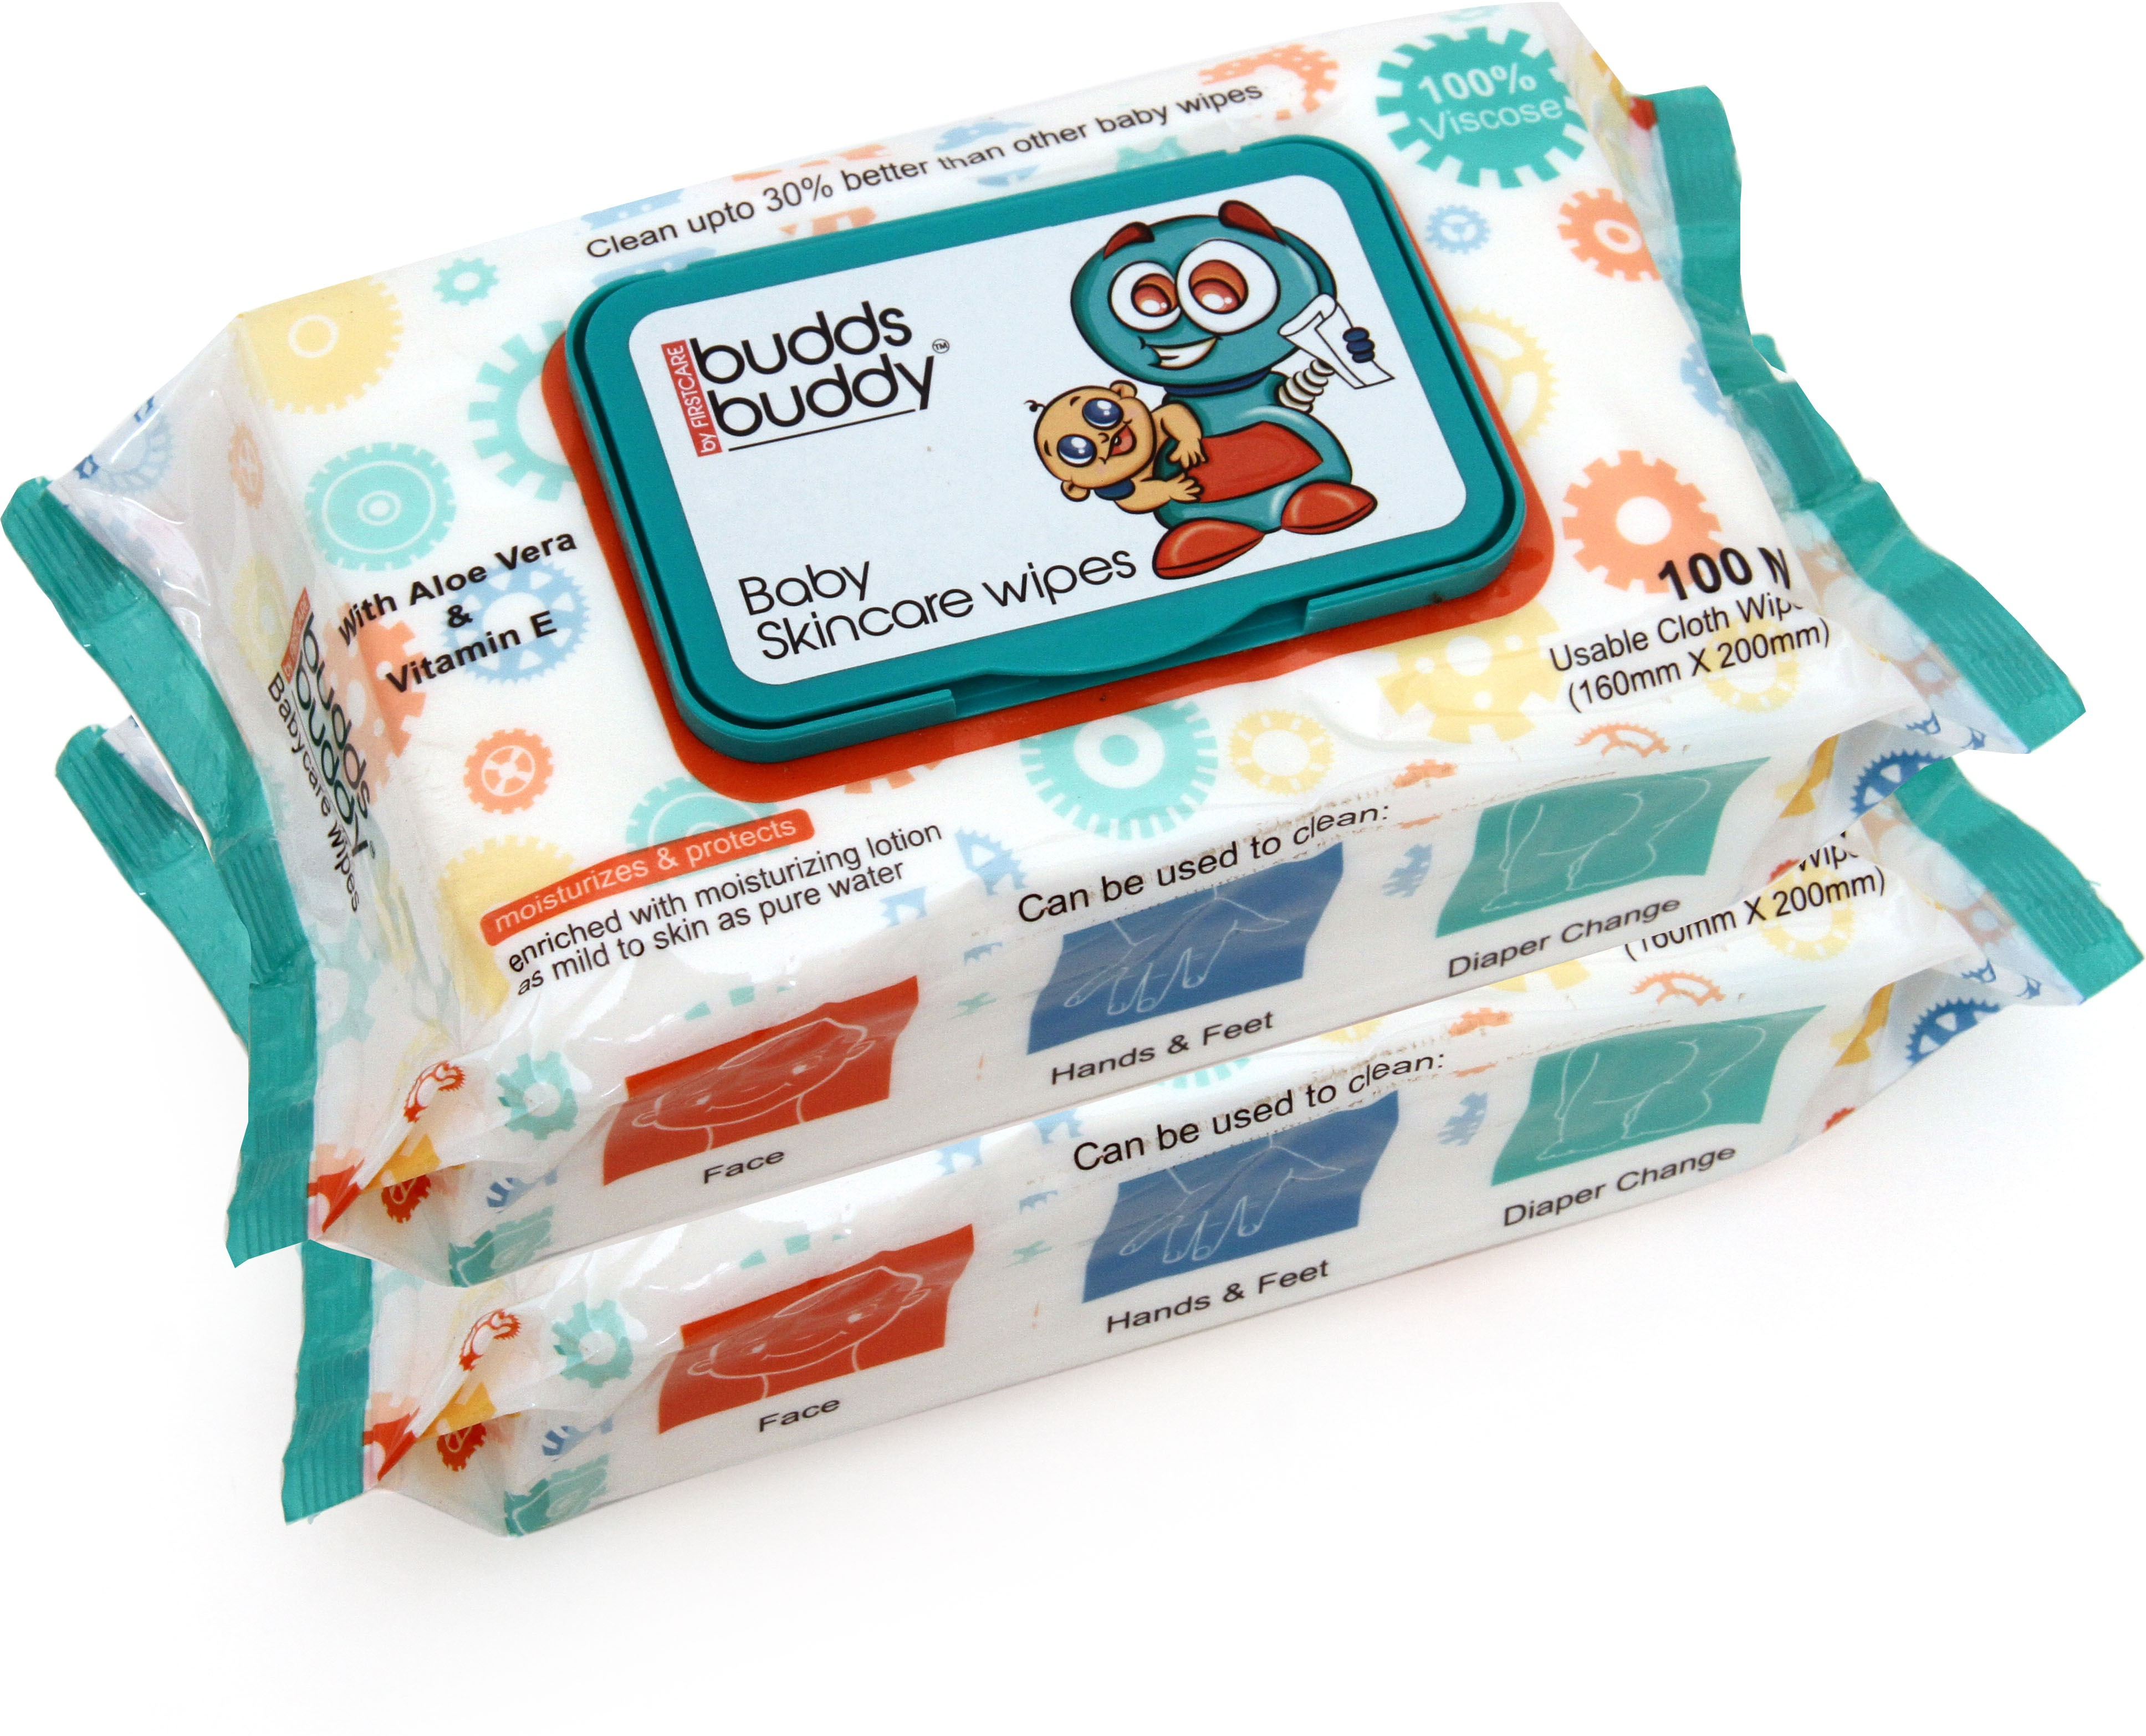 Buddsbuddy 2 Baby Skincare Wet Wipes - 100pcs pack Each(2 Pieces)